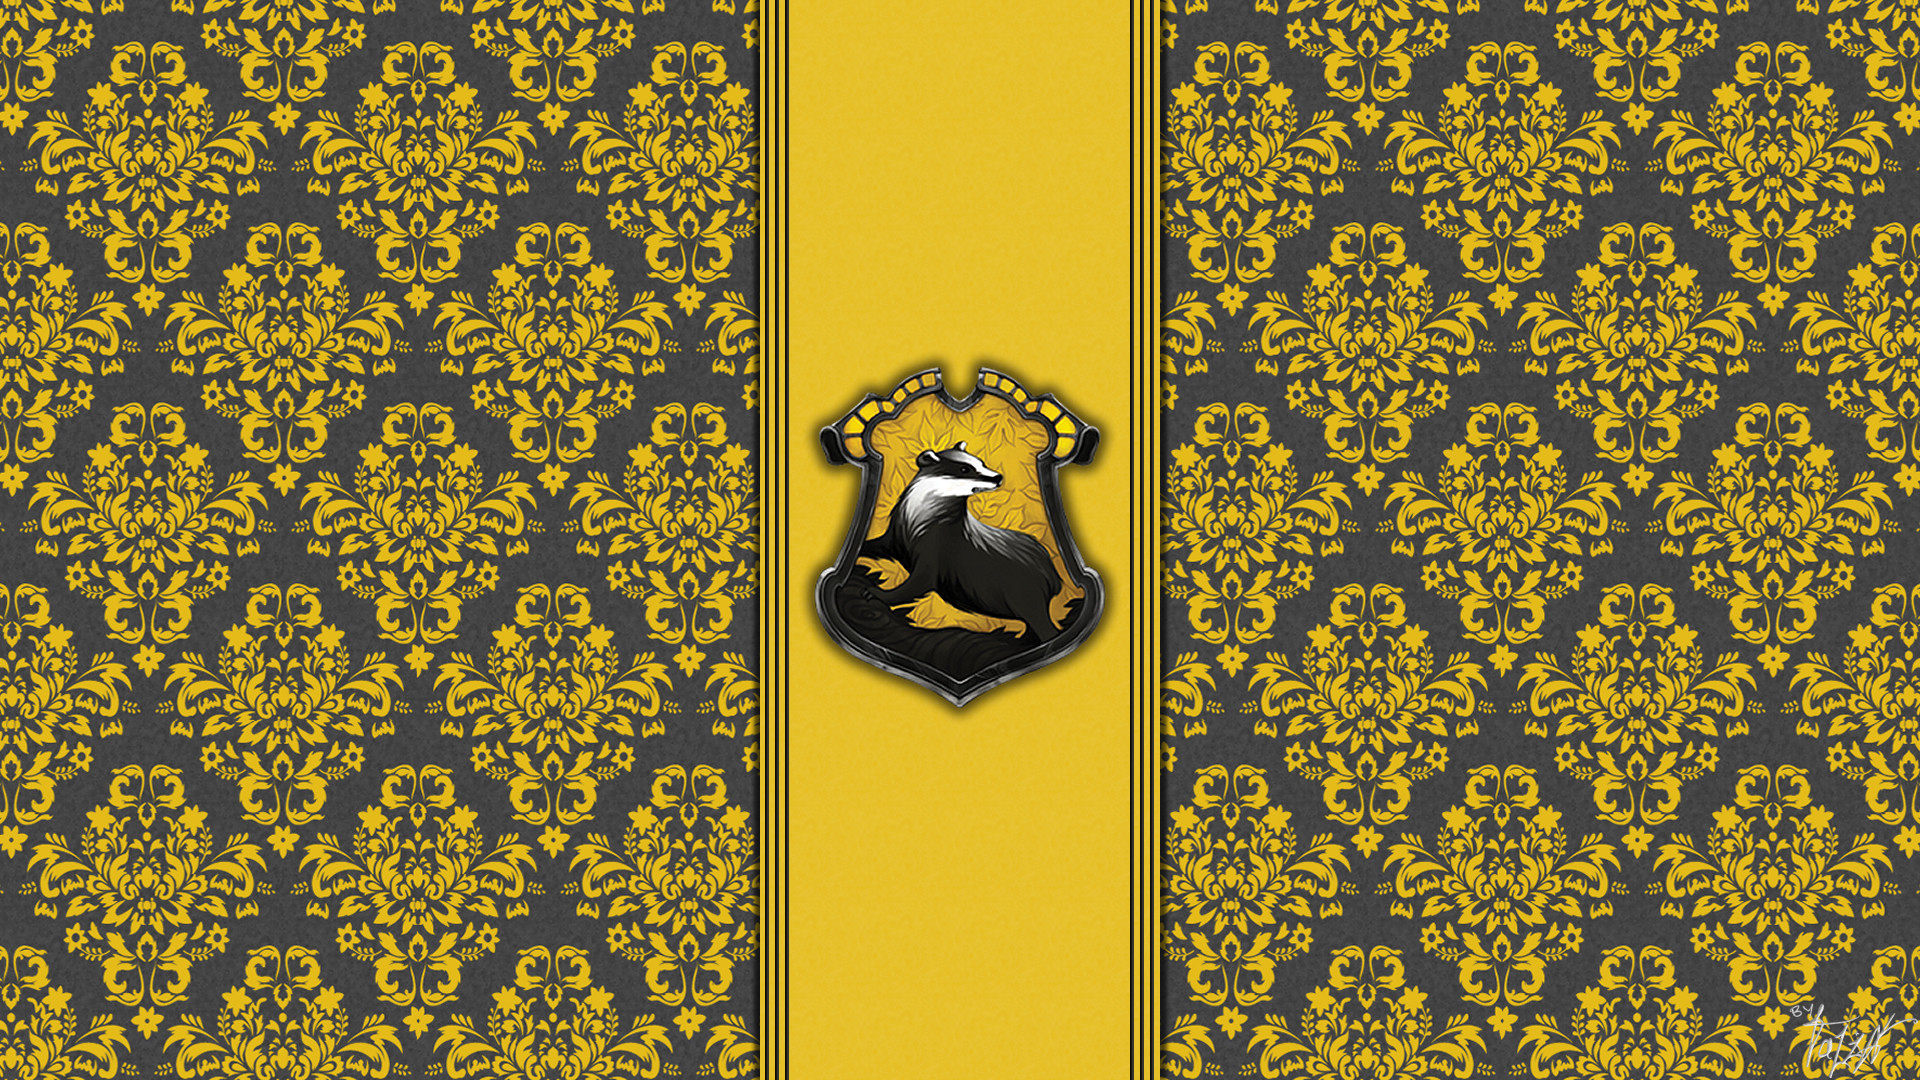 Res: 1920x1080,  House hufflepuff wallpaper hogwarts paper art theladyavatar |  Harry Potter | Pinterest | Colors, Paper and Desktop wallpapers